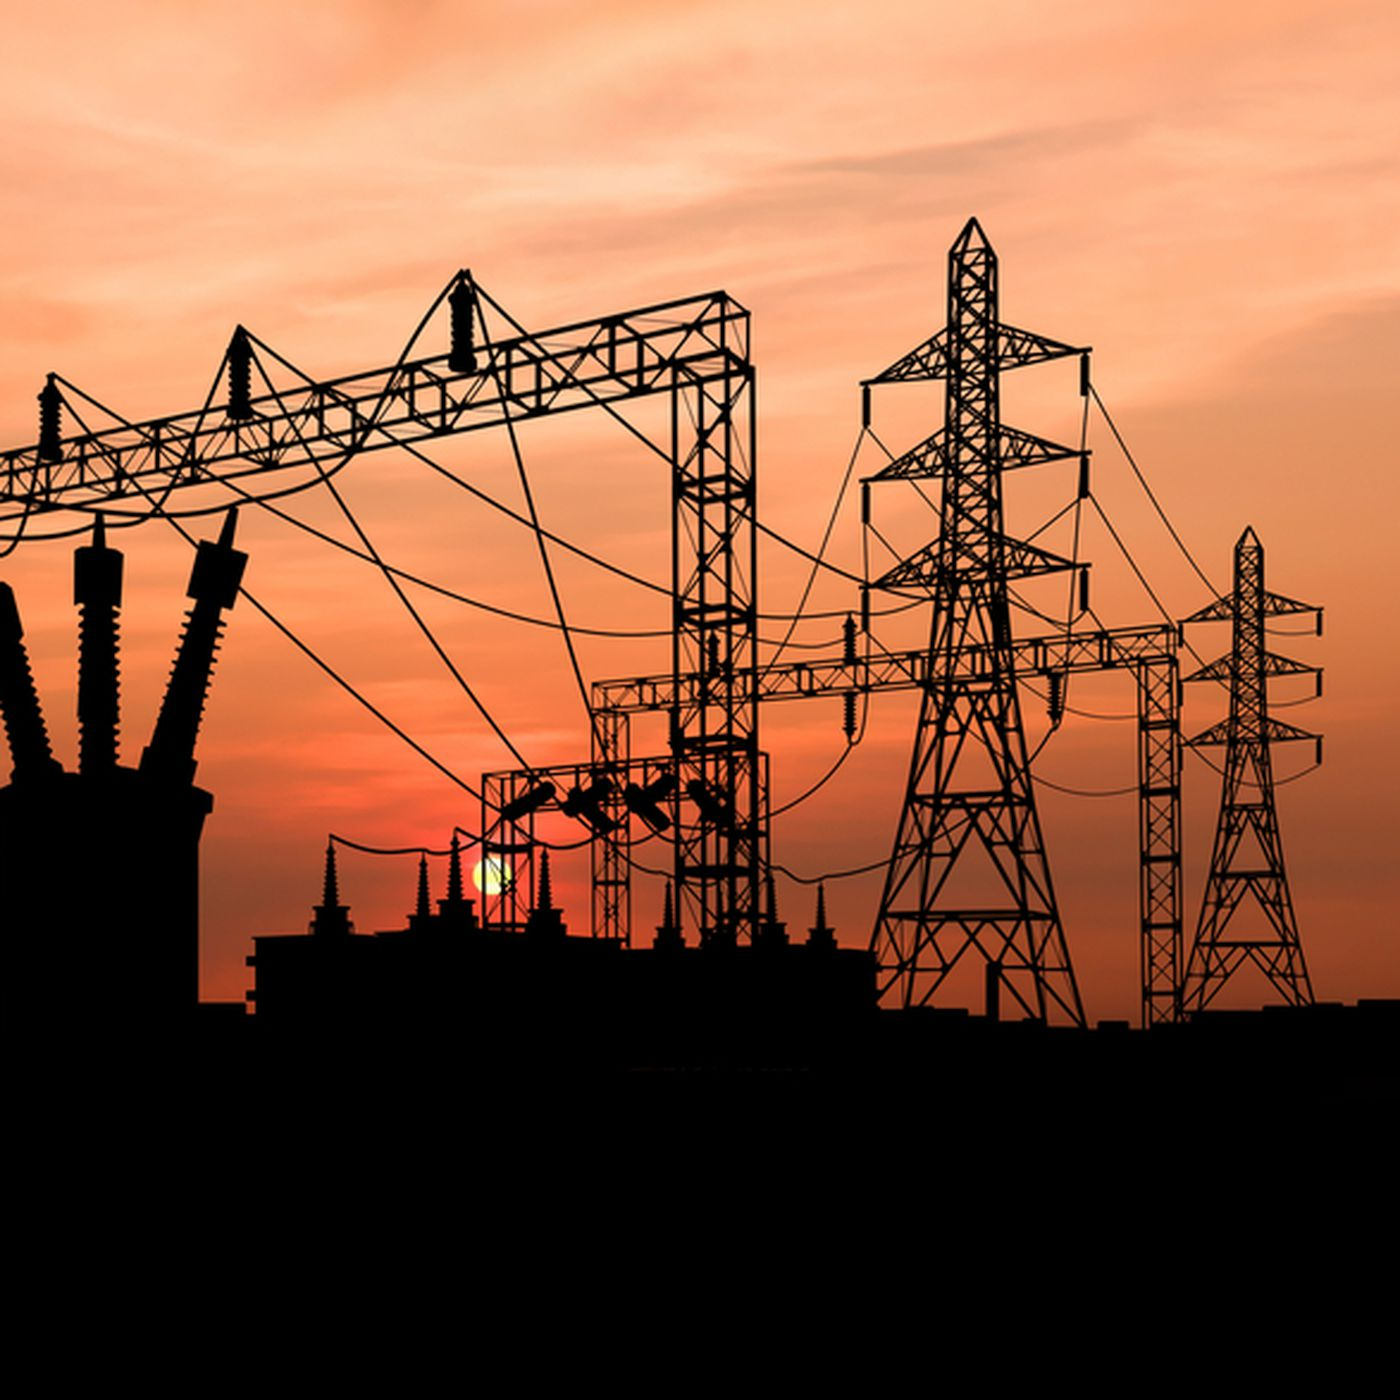 Californias Energy Grid Should The State Join A Regional House Wiring Interview Questions Market Vox